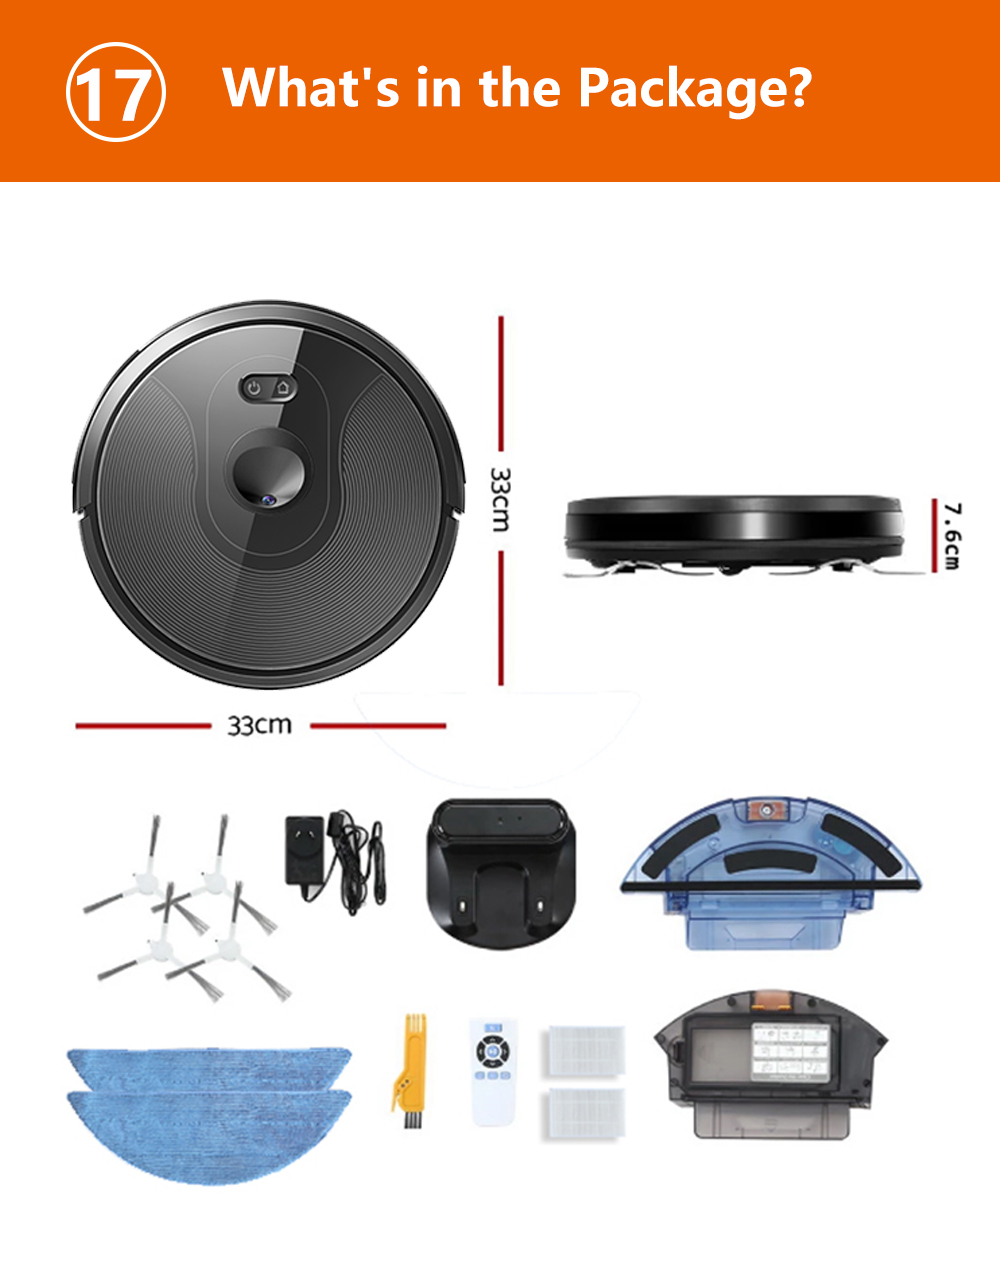 H3a5097b5bfd148818a7af31c5de062a24 ABIR X6 Robot Vacuum Cleaner with Camera Navigation,WIFI APP controlled,Breakpoint Continue Cleaning,Draw Cleaning Area,Save Map